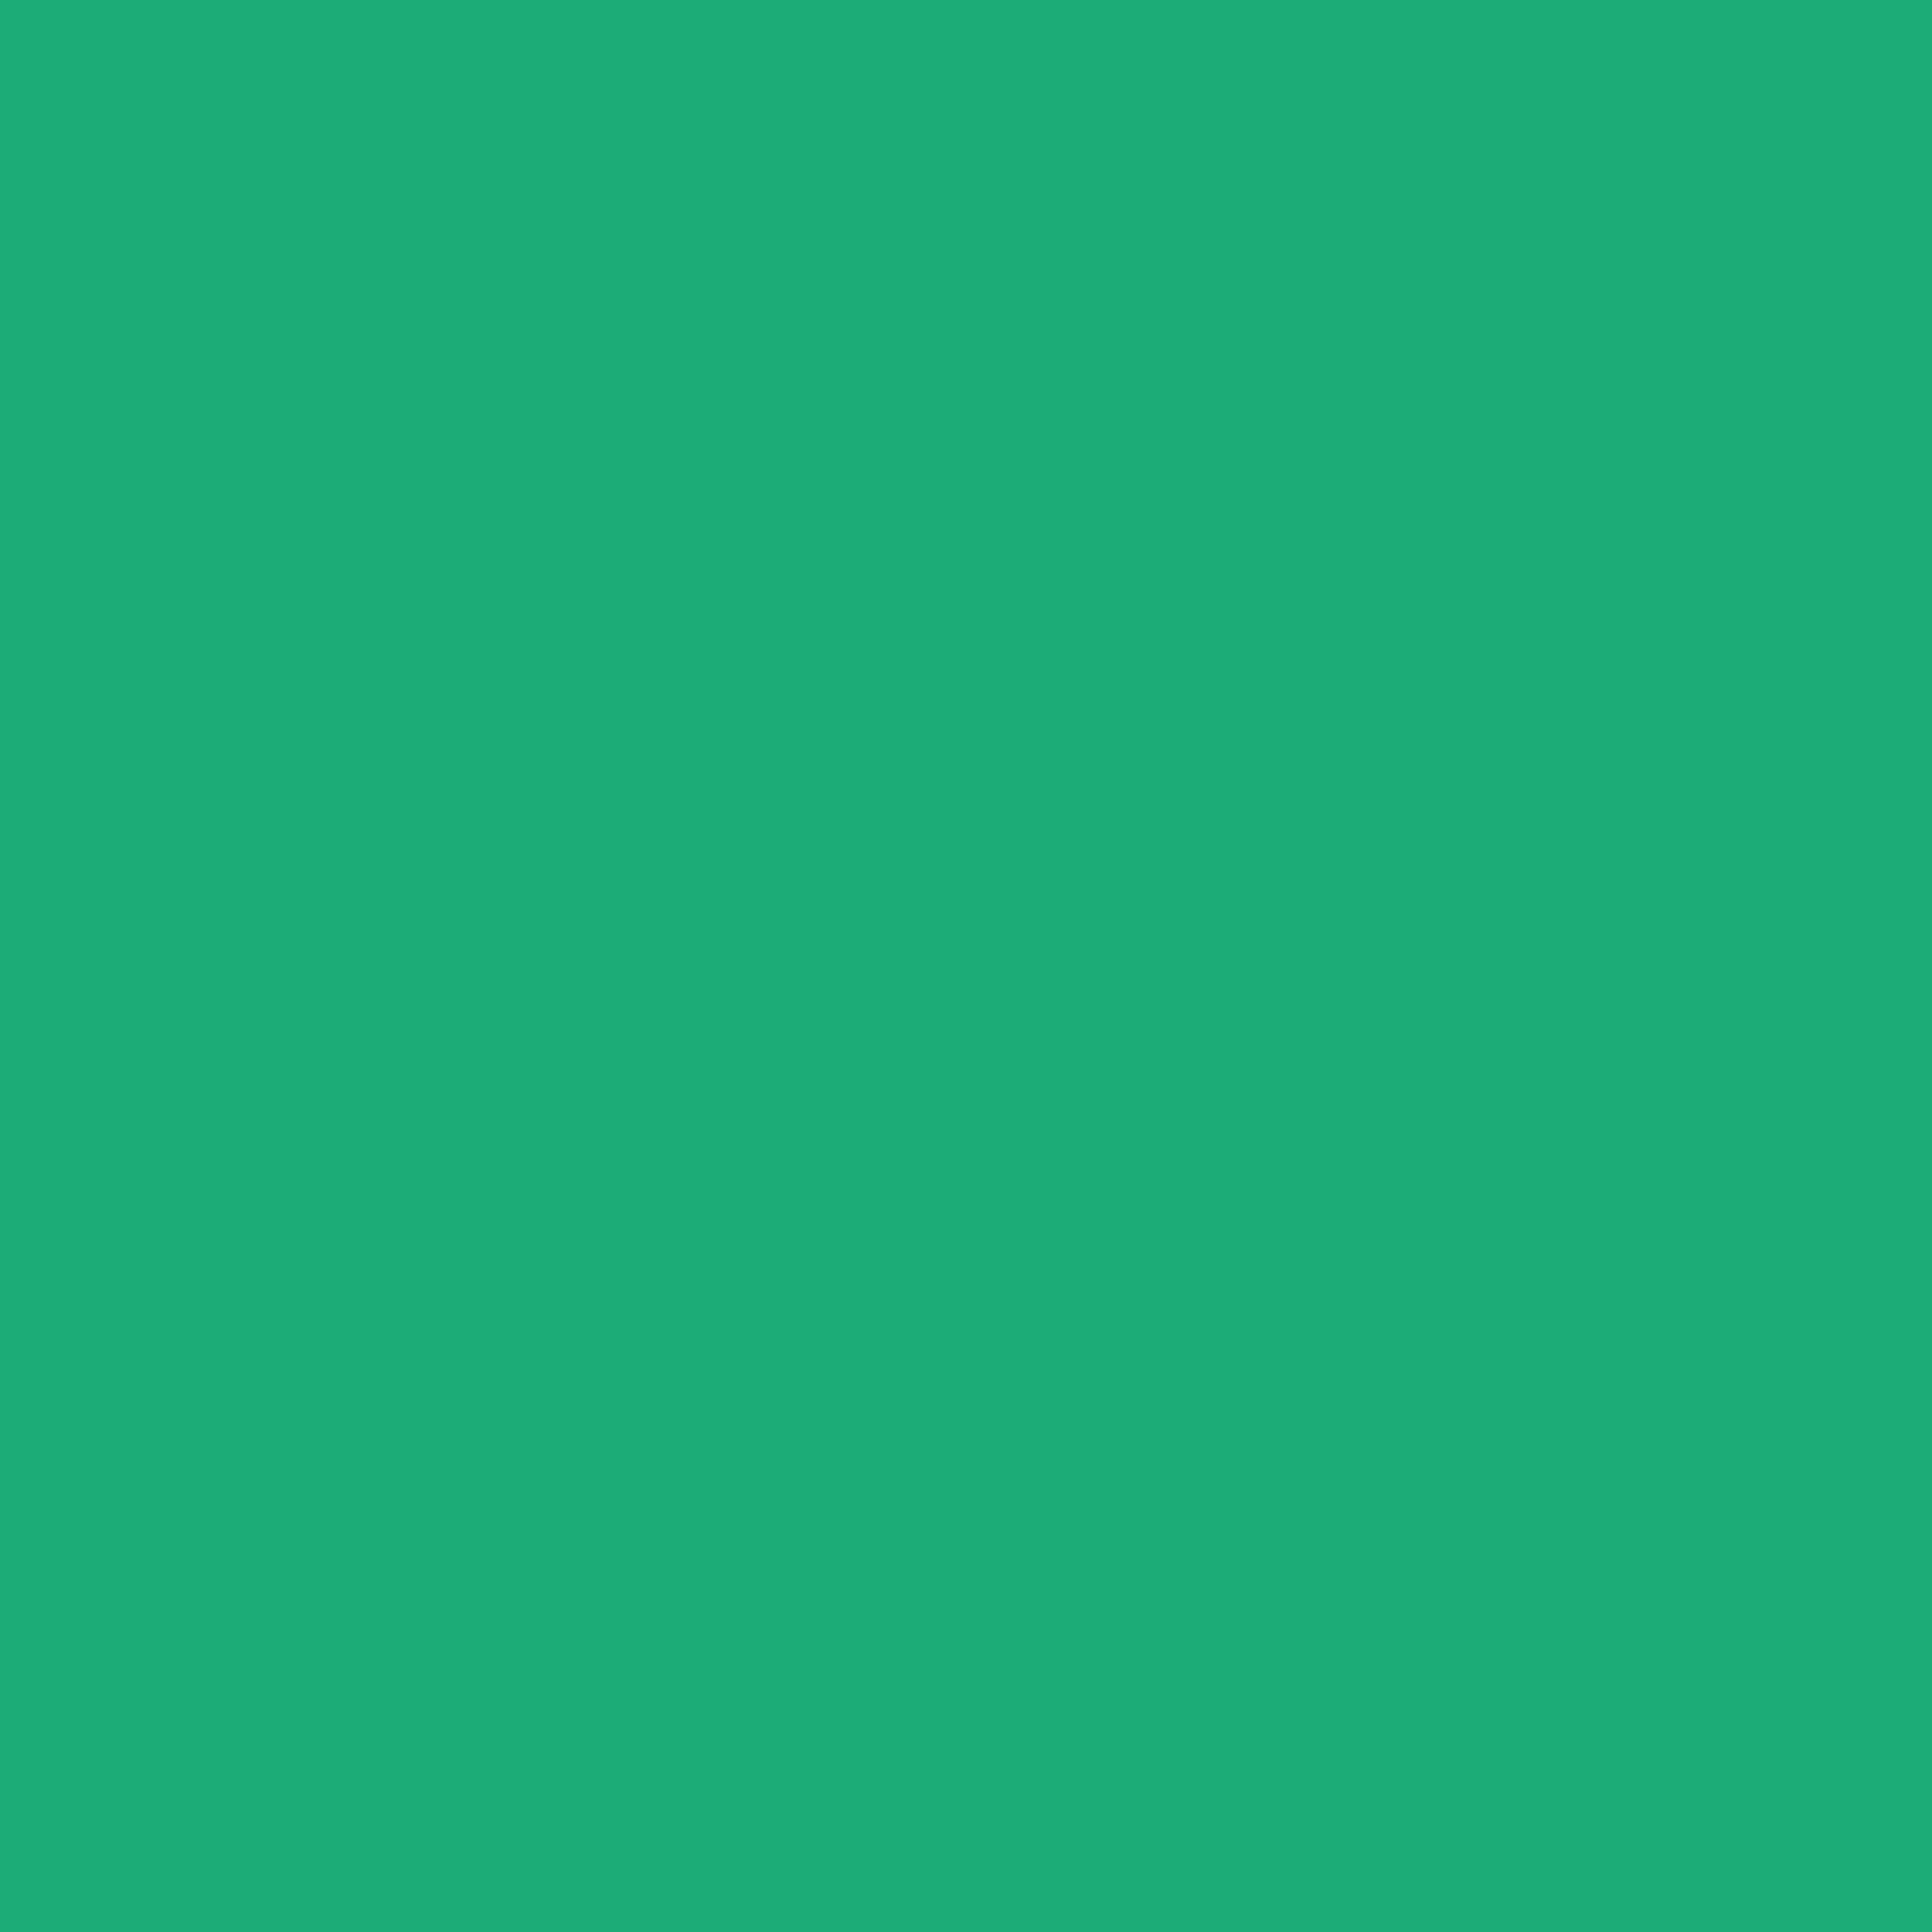 2732x2732 Green Crayola Solid Color Background